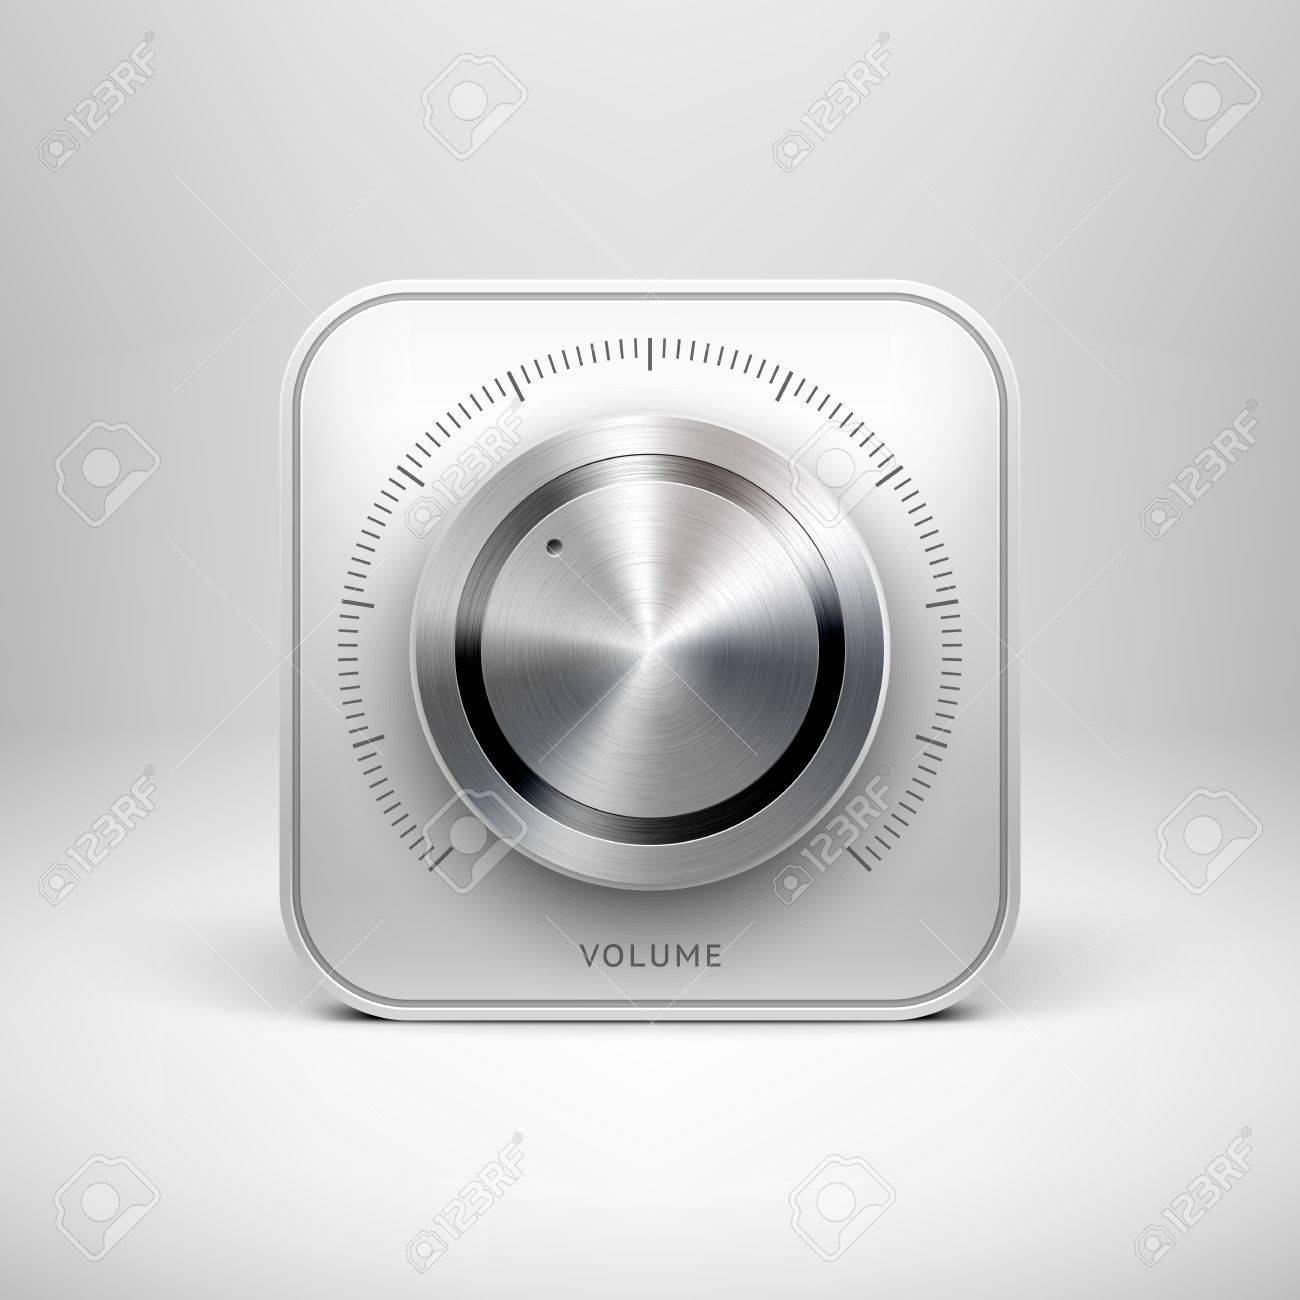 Abstract technology app icon with music button  volume, sound control knob , metal texture  stainless steel, chrome, silver , shadow and light background for web user interfaces  UI  and applications Stock Vector - 19017672